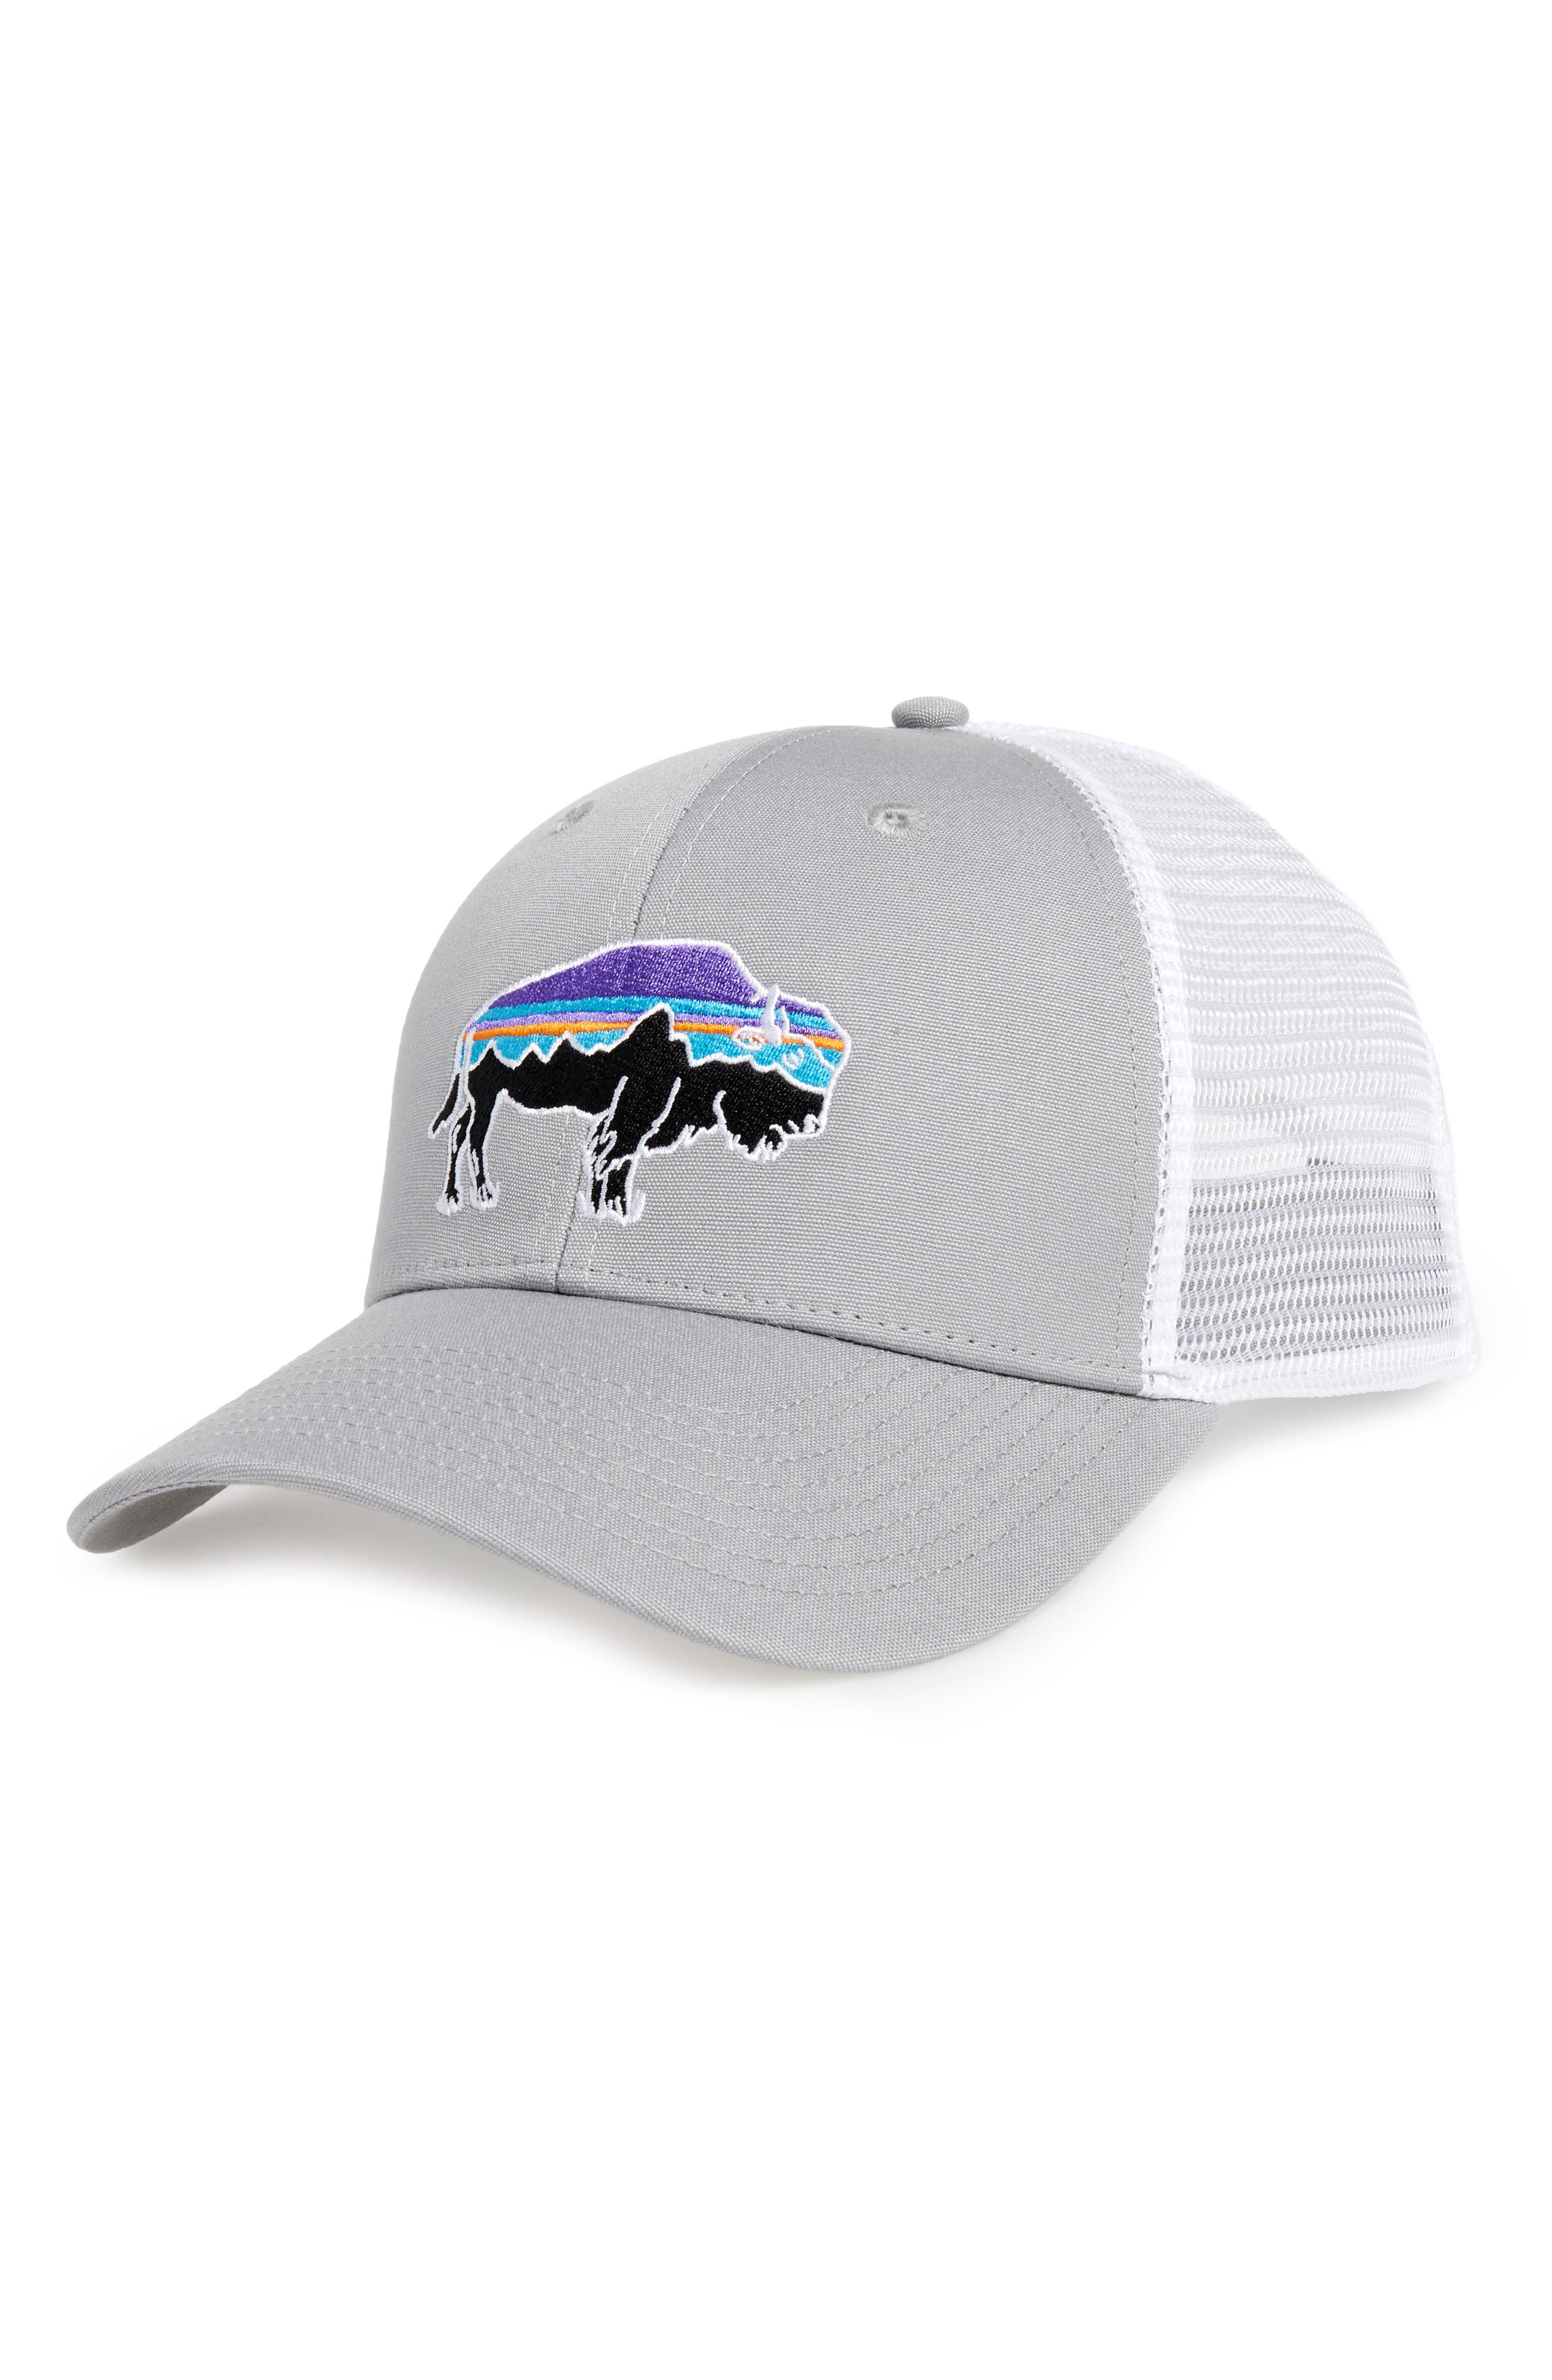 'Fitz Roy Bison' Trucker Hat,                         Main,                         color, Drifter Grey